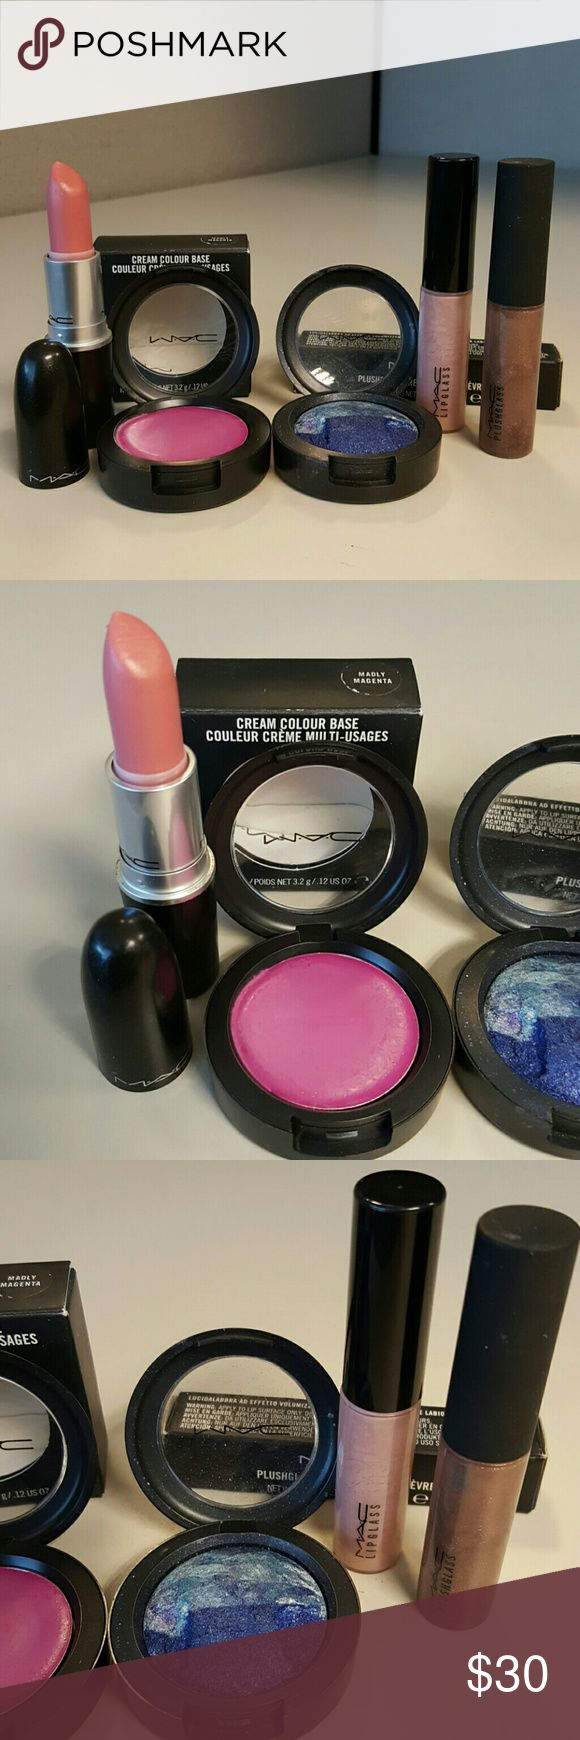 Five MAC items All Gently Used; NOT SEPARATING; NO TRADES;  Speed Dial Lipstick  Wet, Wild, Wonderful Plushglass (with box) Oyster Girl Lipglass  Madly Magenta Cream Colour Base (with box) Sea & Sky Mineralize Eye Shadow MAC Cosmetics Makeup